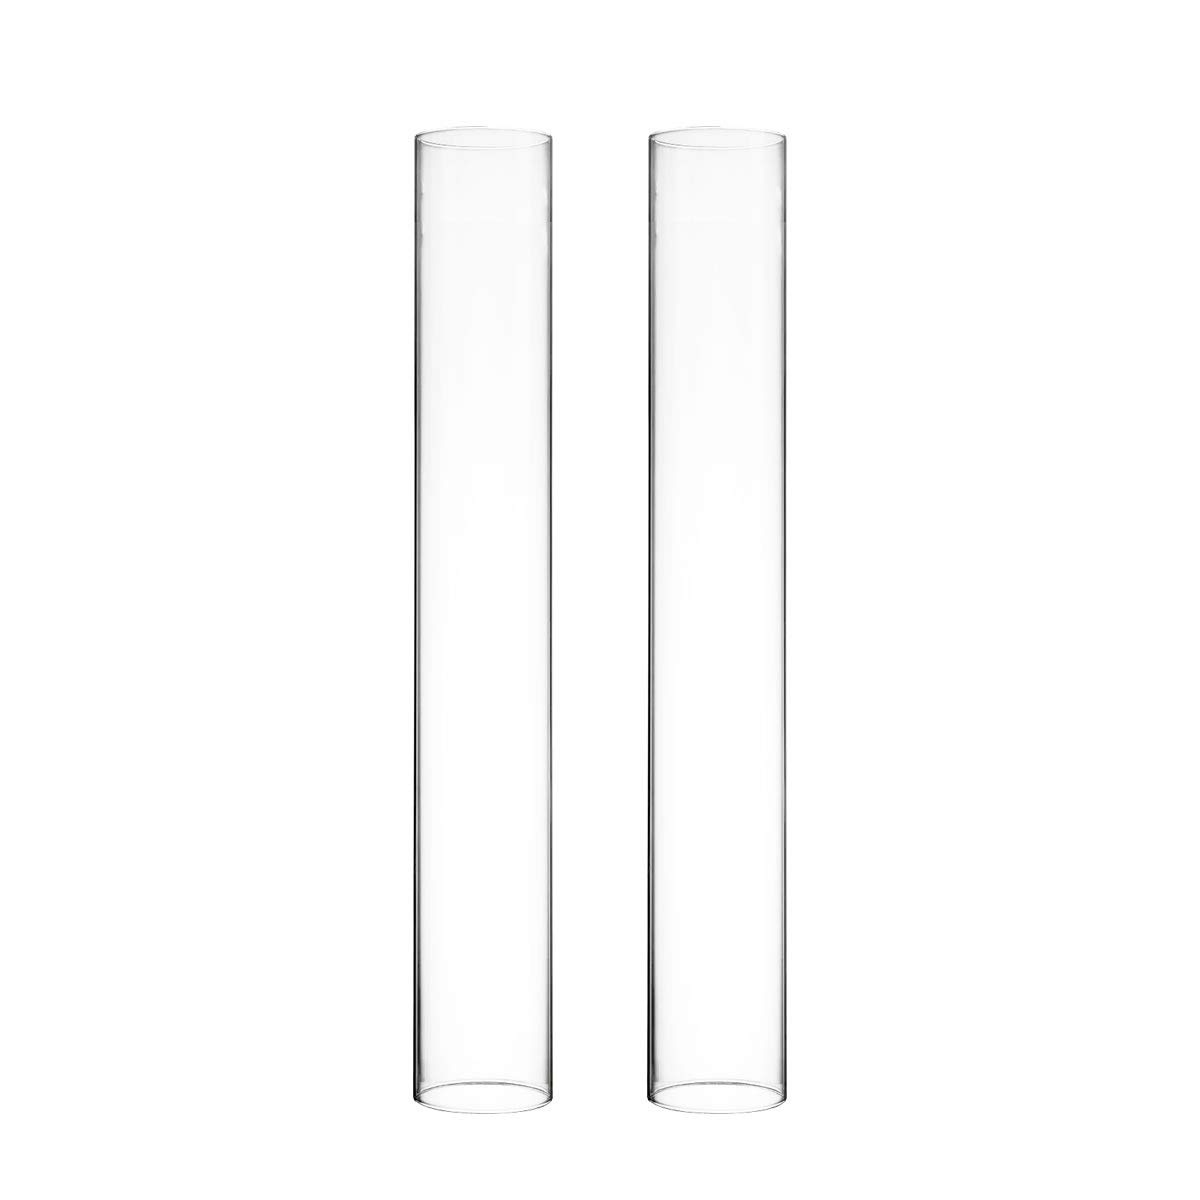 CYS EXCEL Pack of 6 Glass Hurricane Candle Holders, Tabletop Protection Decoration, Chimney Tube, Glass Cylinder Open Both Ends, Open Ended Hurricane, Candle Shade (2.5'' Wide x 18'' Tall)